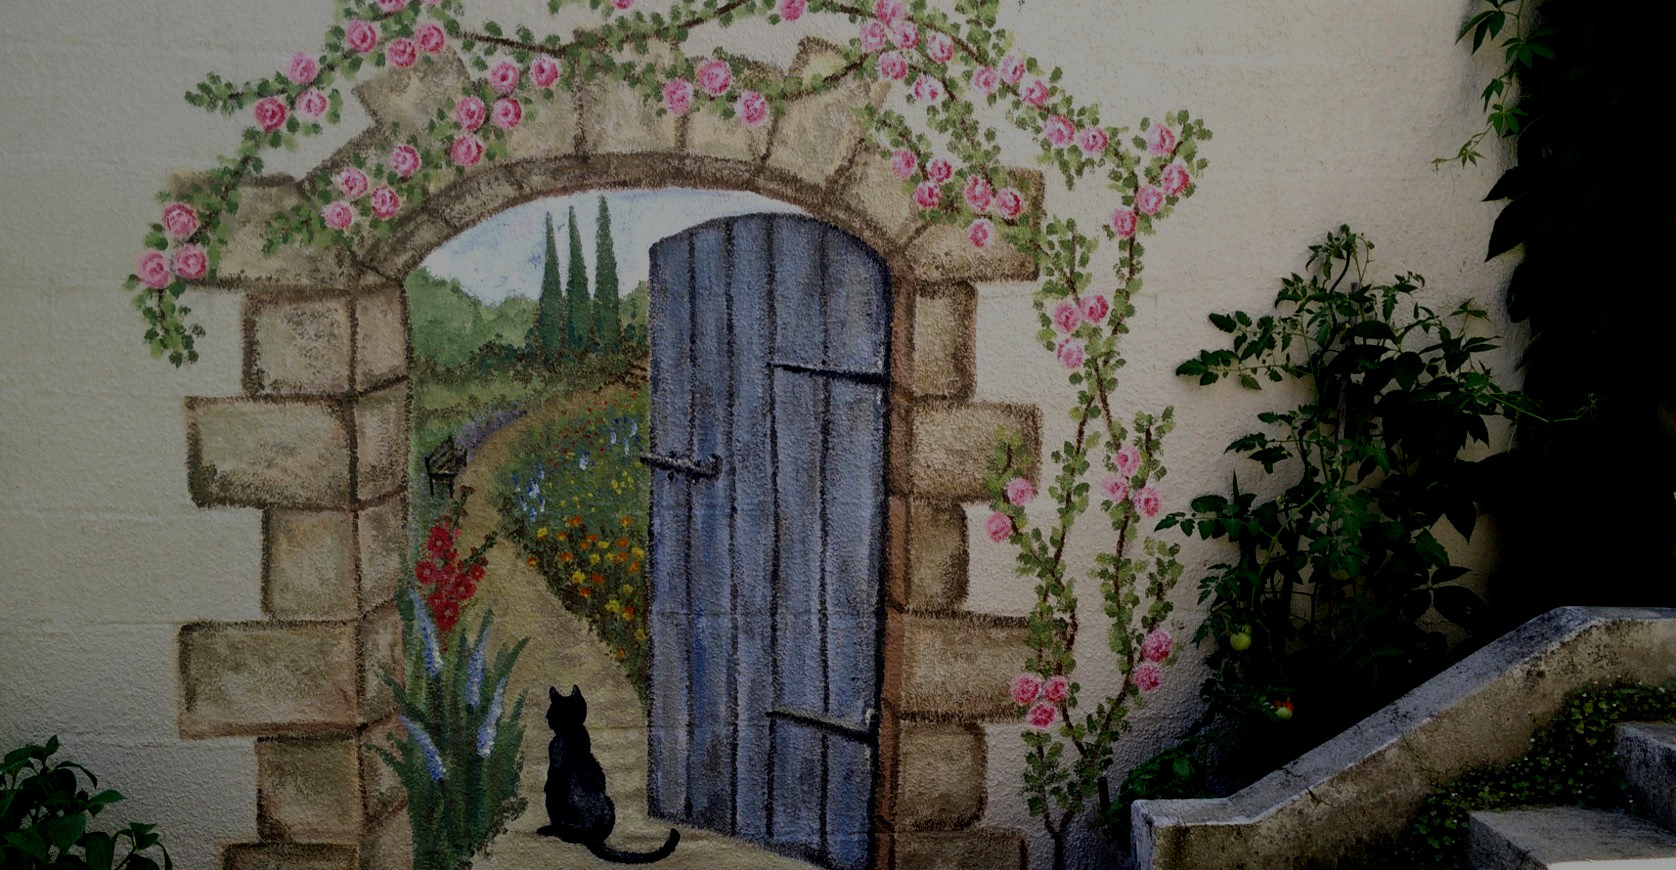 Secret garden mural paris en rose for Mural garden